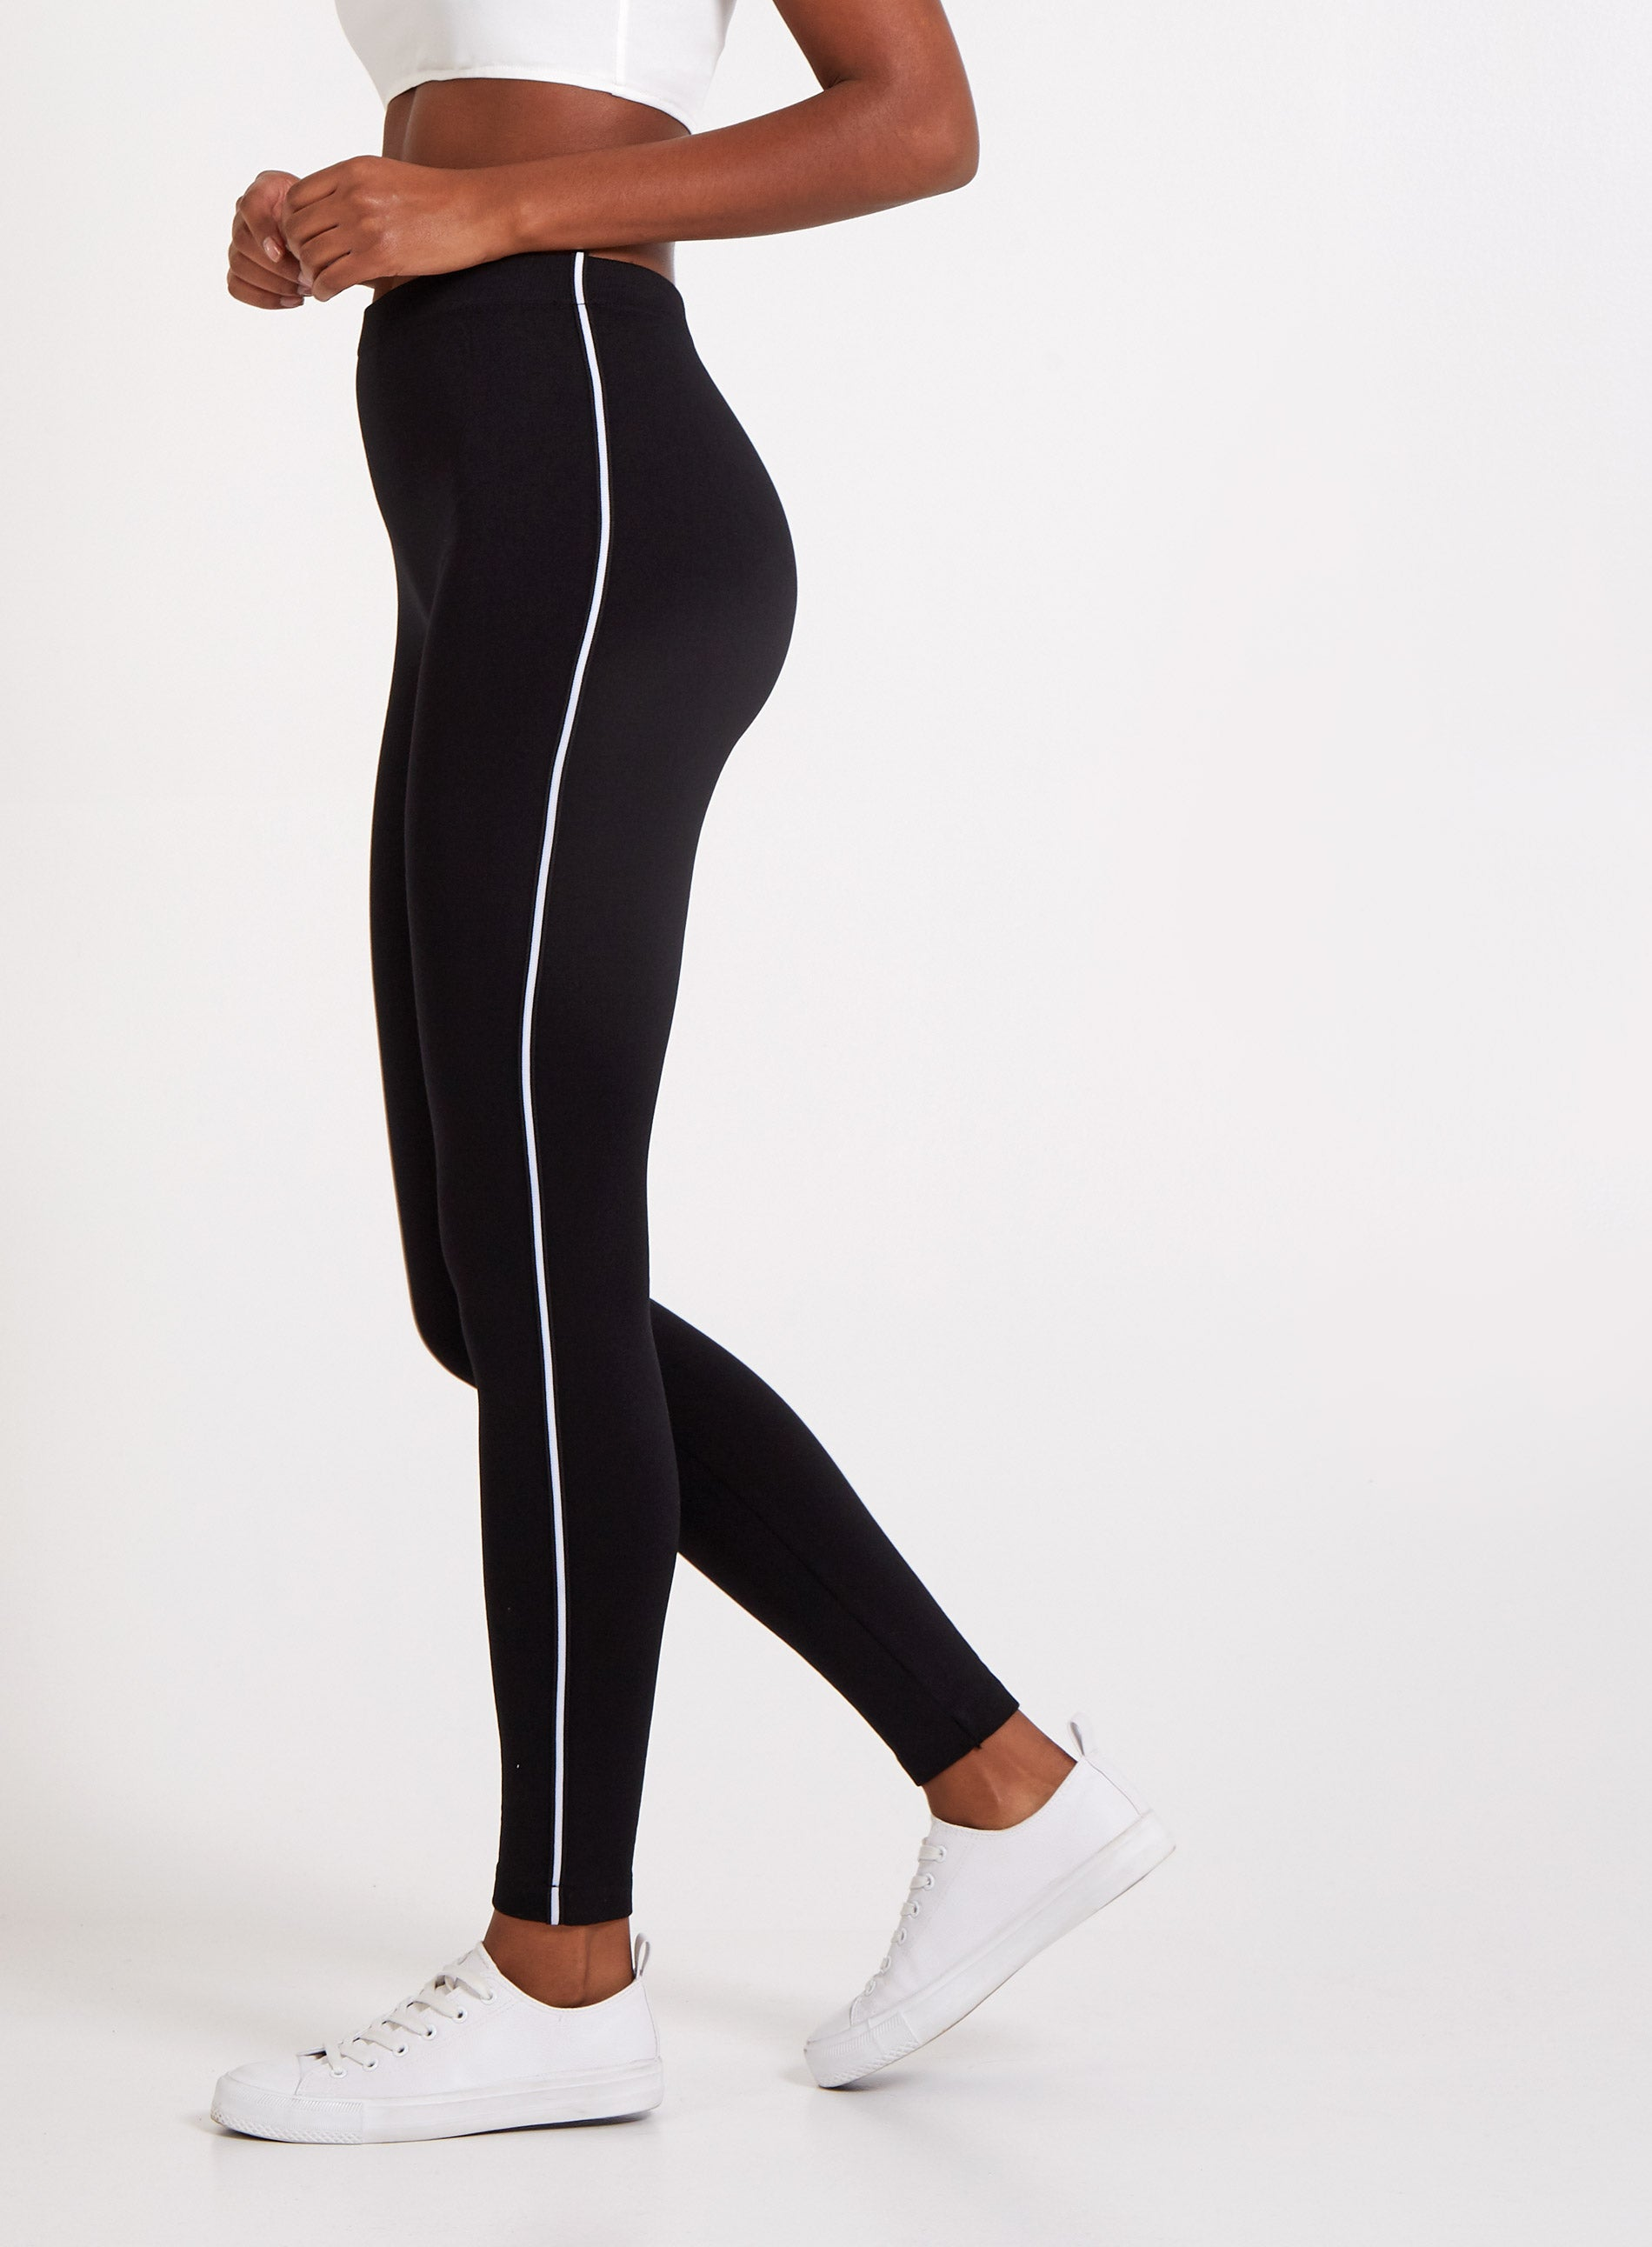 CHEERFUL - Go Faster Single Stripe Leggings